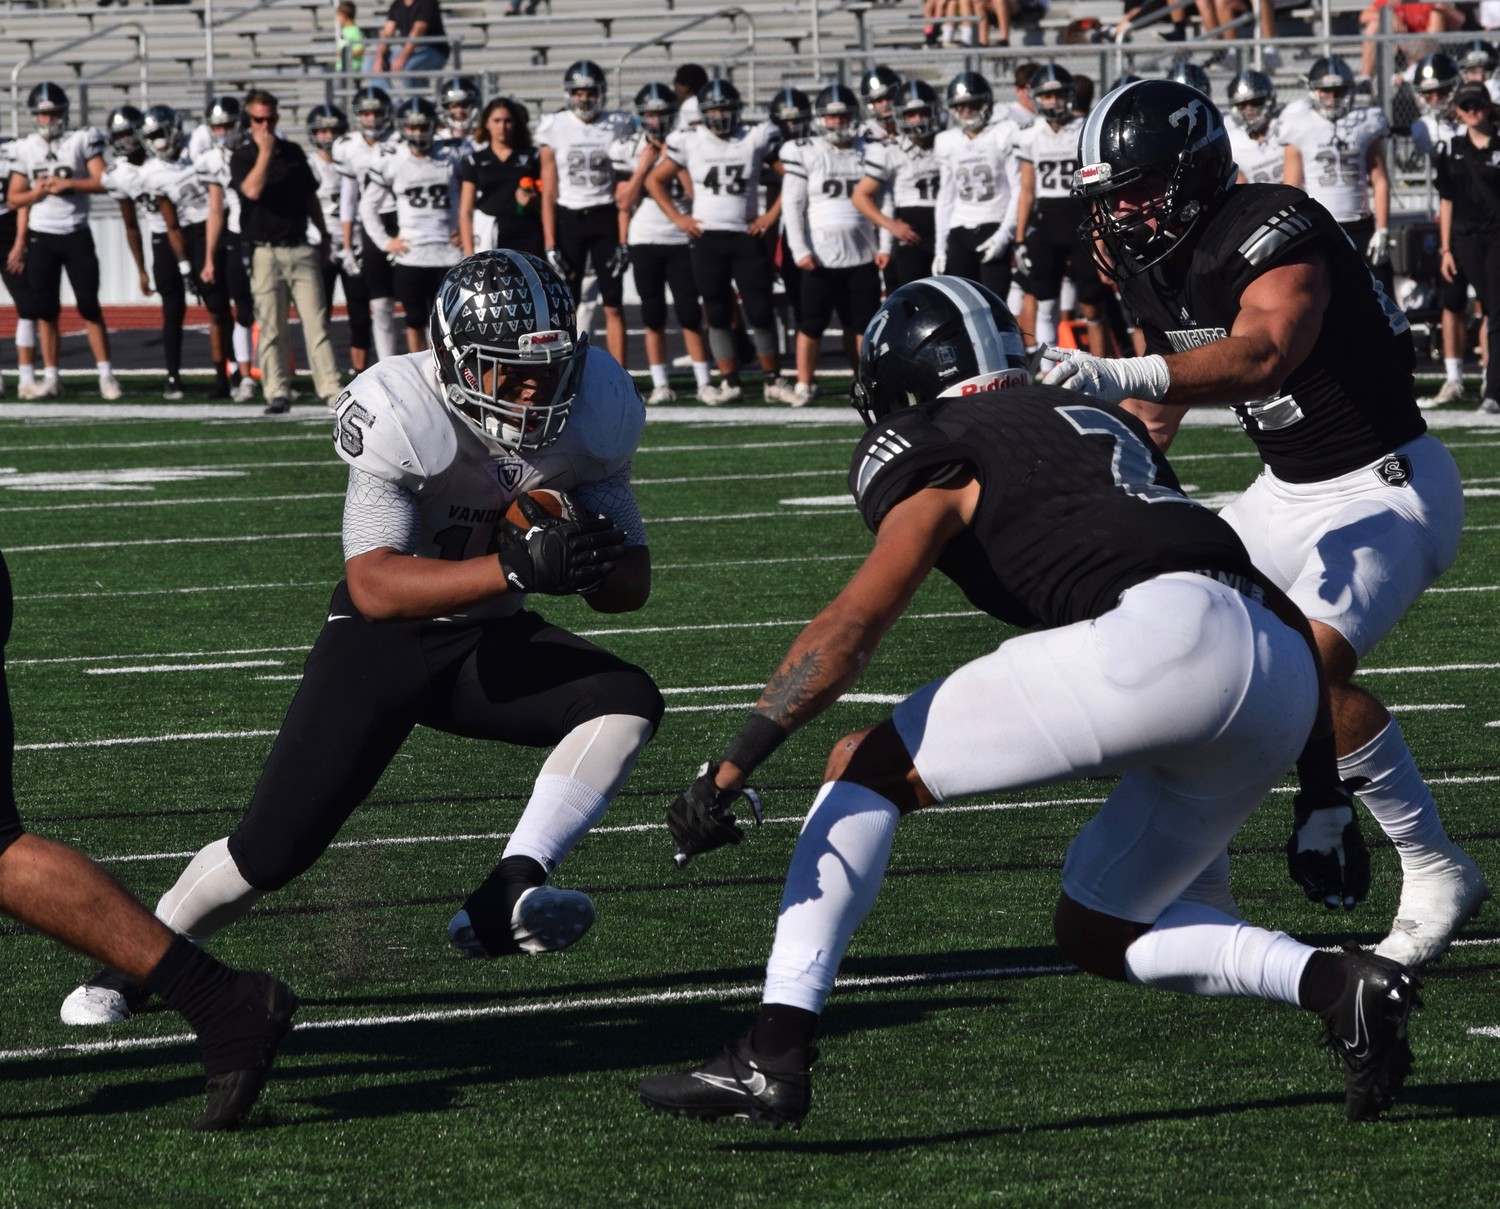 Isaiah Smallwood and Vandegrift lost to Cibolo Steele 36-18 in the area round of the playoffs Friday in New Braunfels.